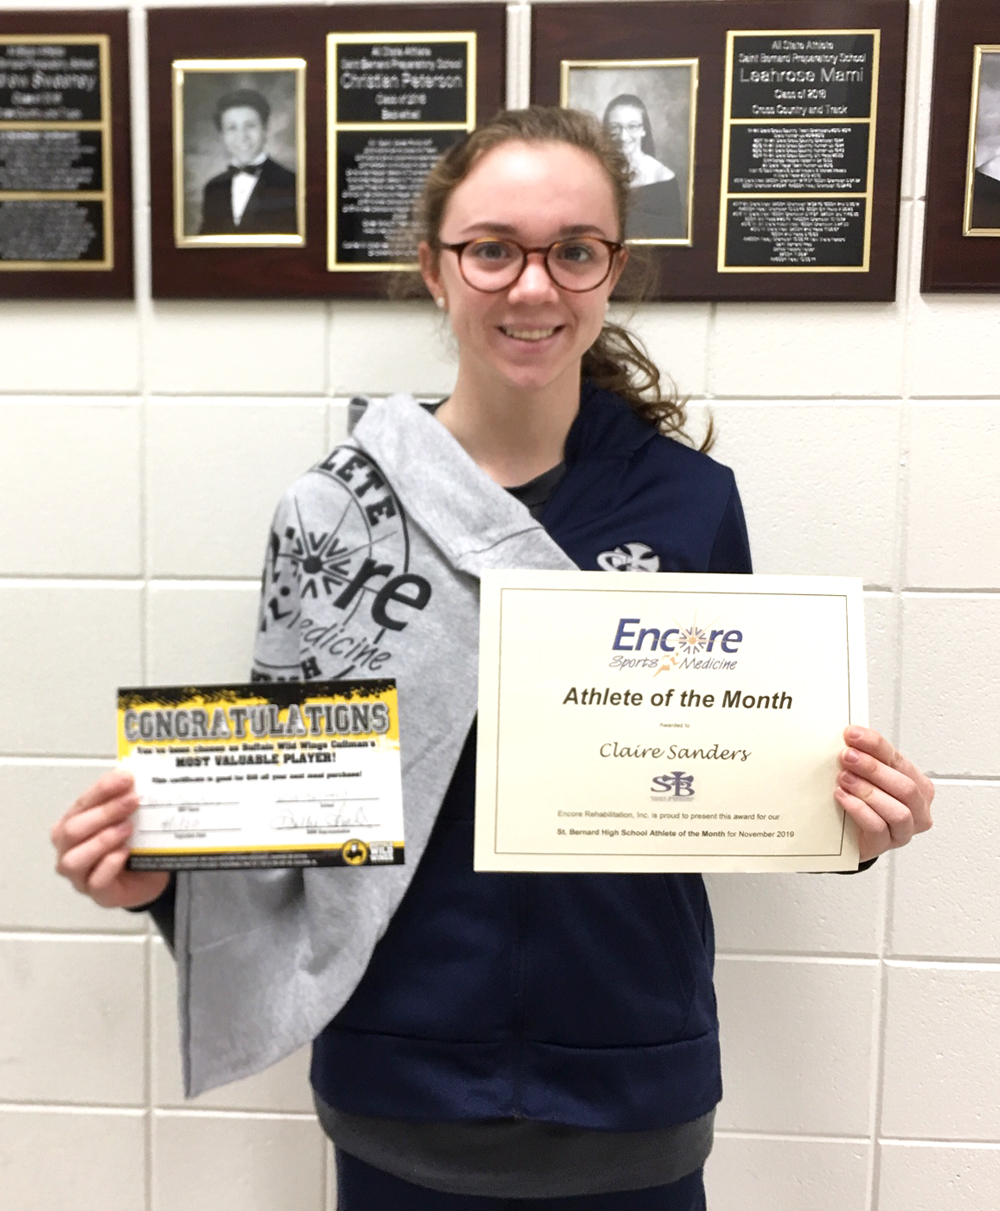 Claire Sanders is Athlete of the Month for St. Bernard Preparatory and #EncoreRehab Cullman